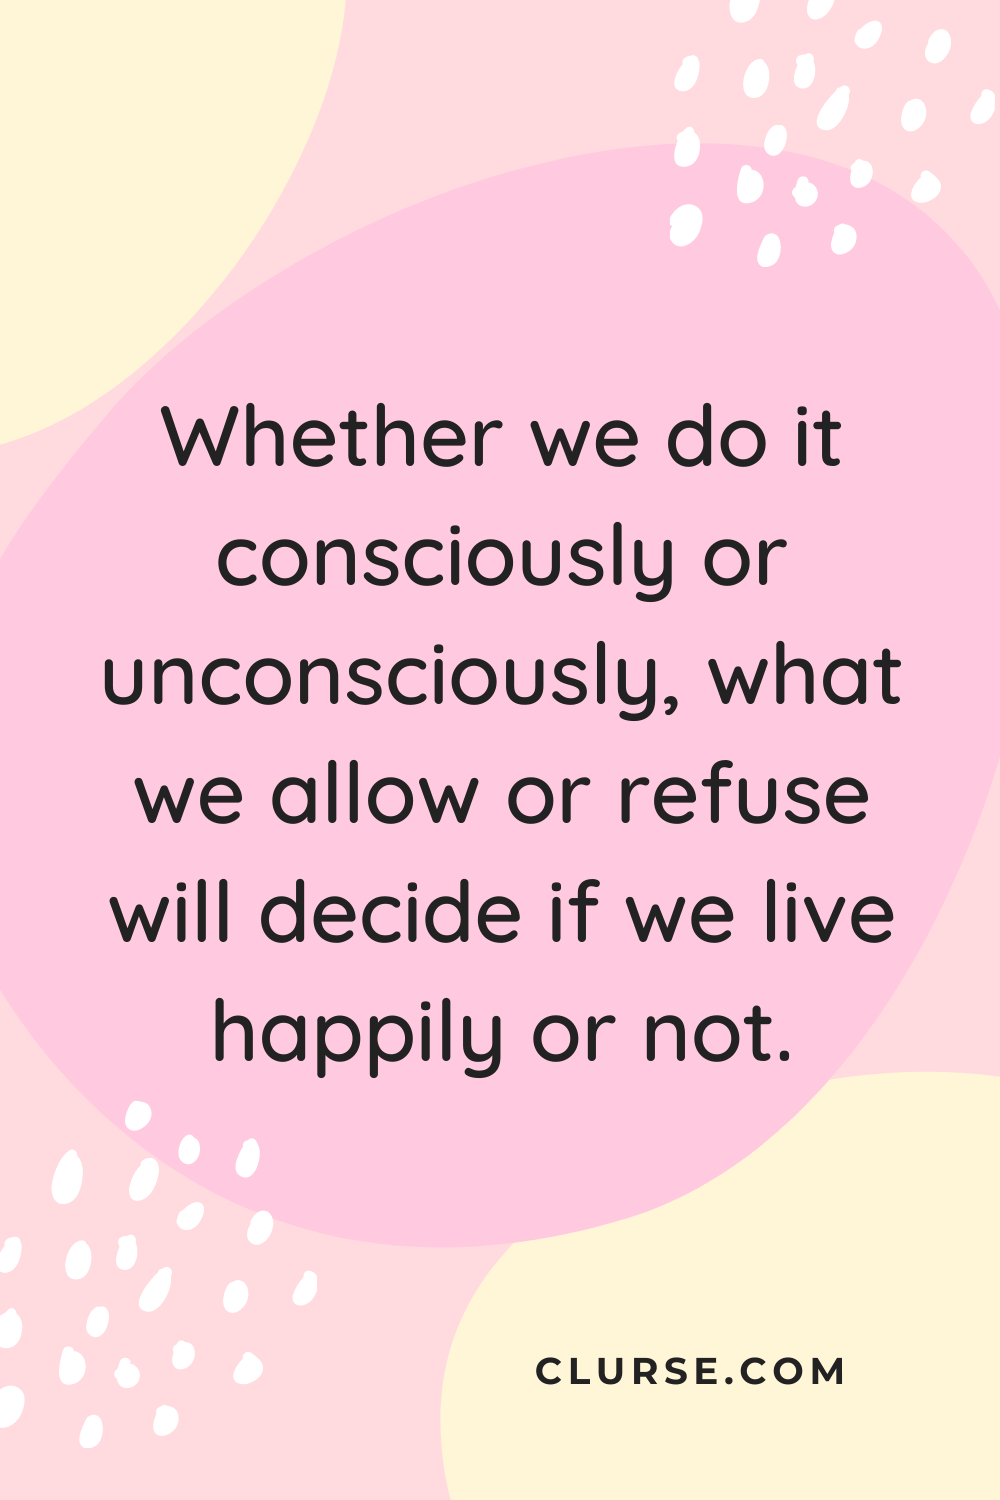 Happiness decision quote